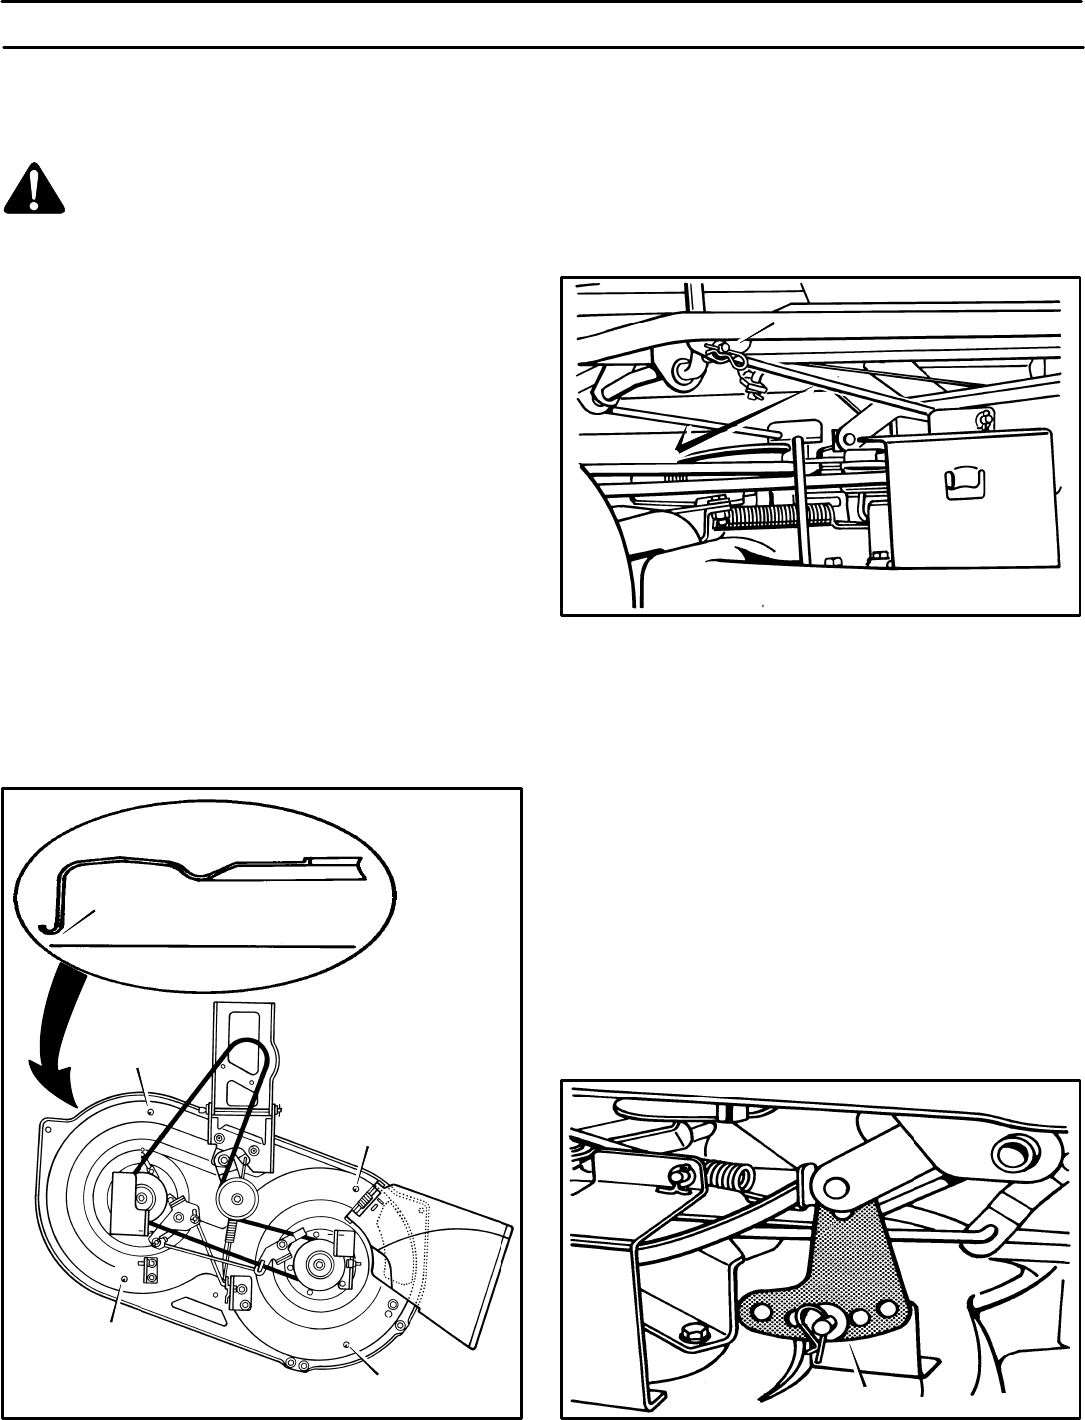 Page 27 of Murray Lawn Mower 387004x48A User Guide